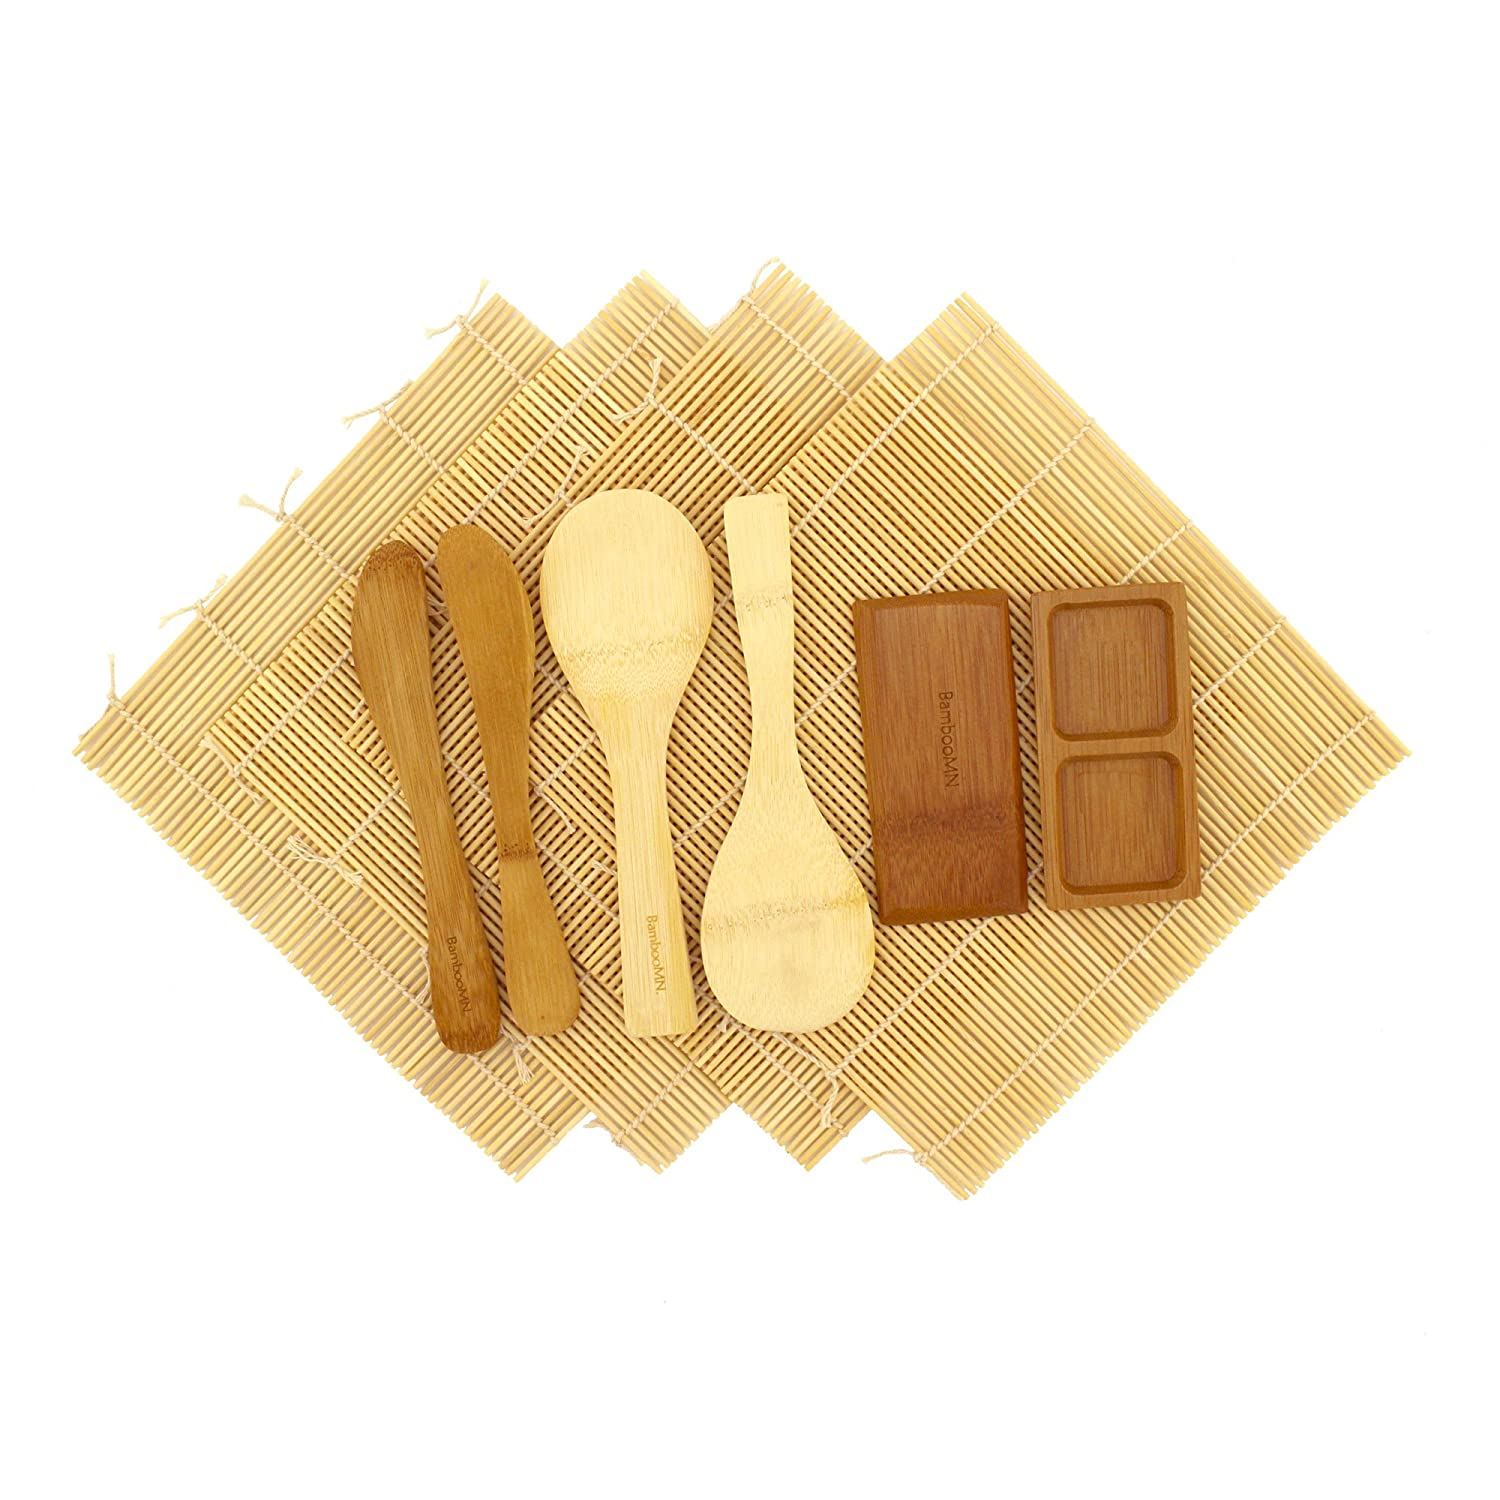 100/% Bamboo Mats and Utensils BambooMN Deluxe Sushi Maker Kit 2 SETS of 2x Rolling Mats 1x Compartment Sauce Dish 1x Spreader 1x Rice Paddle